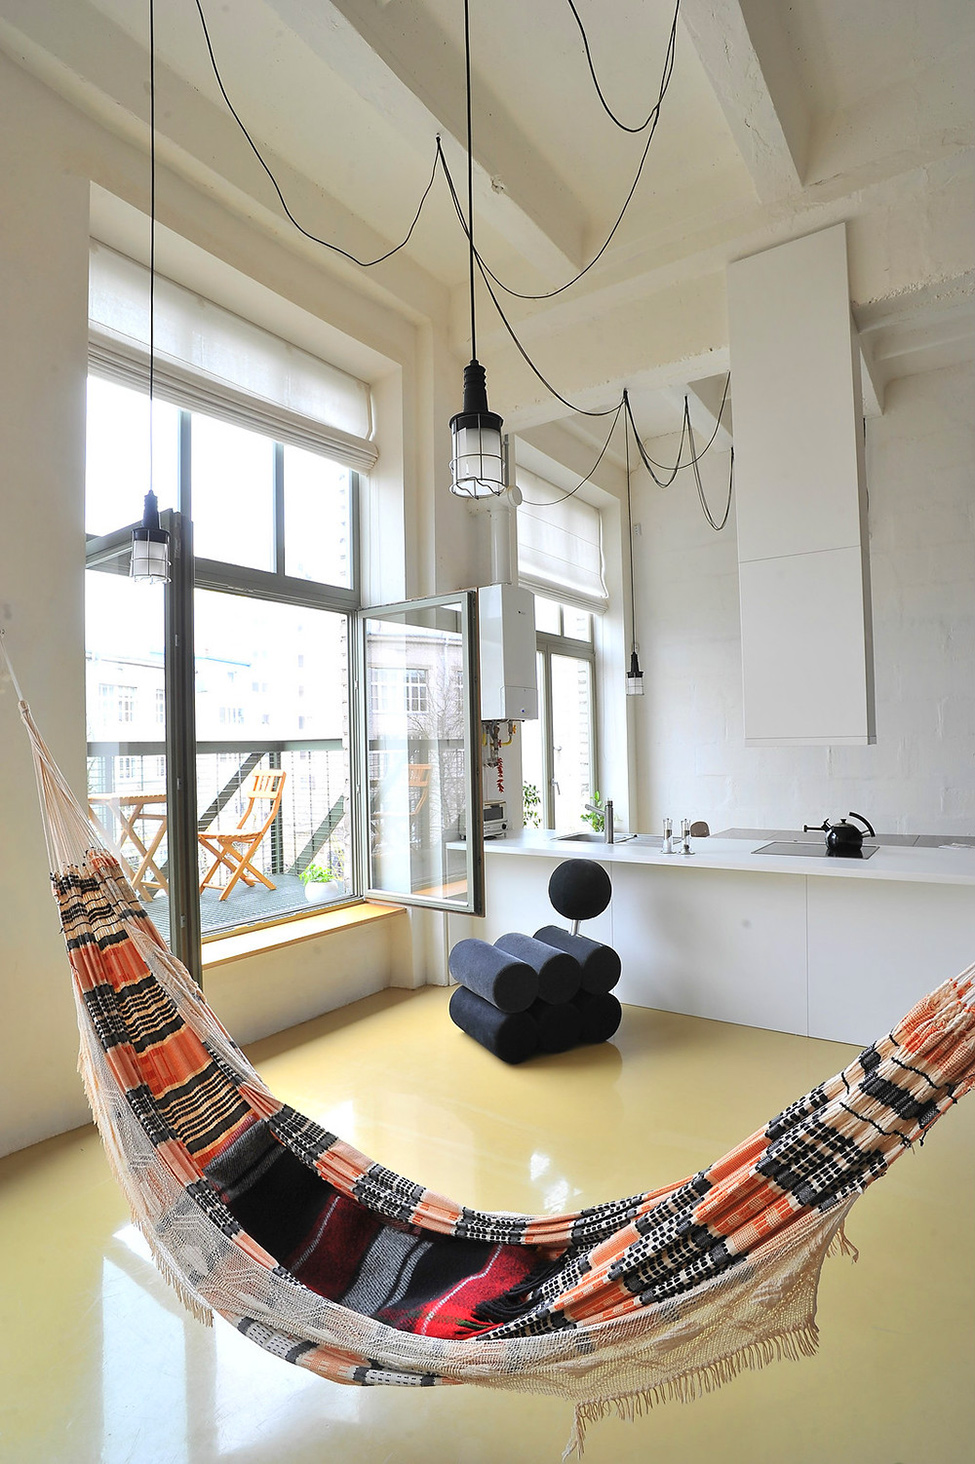 Collect this idea hammock testing ground for new ideas